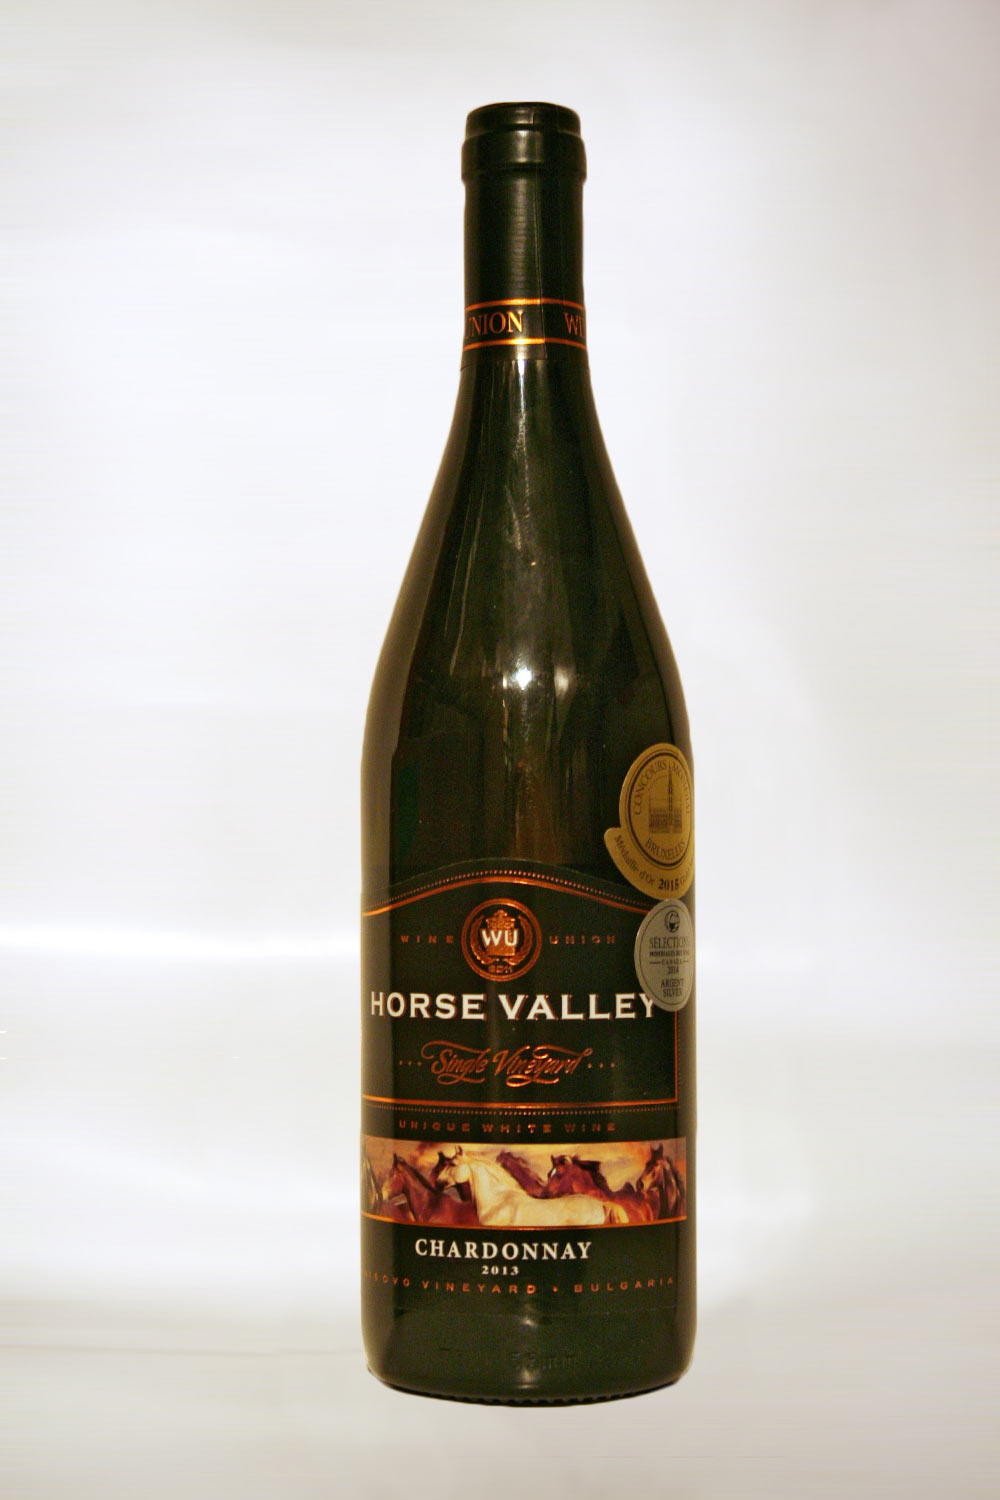 Horse Valley Chardonnay 2013